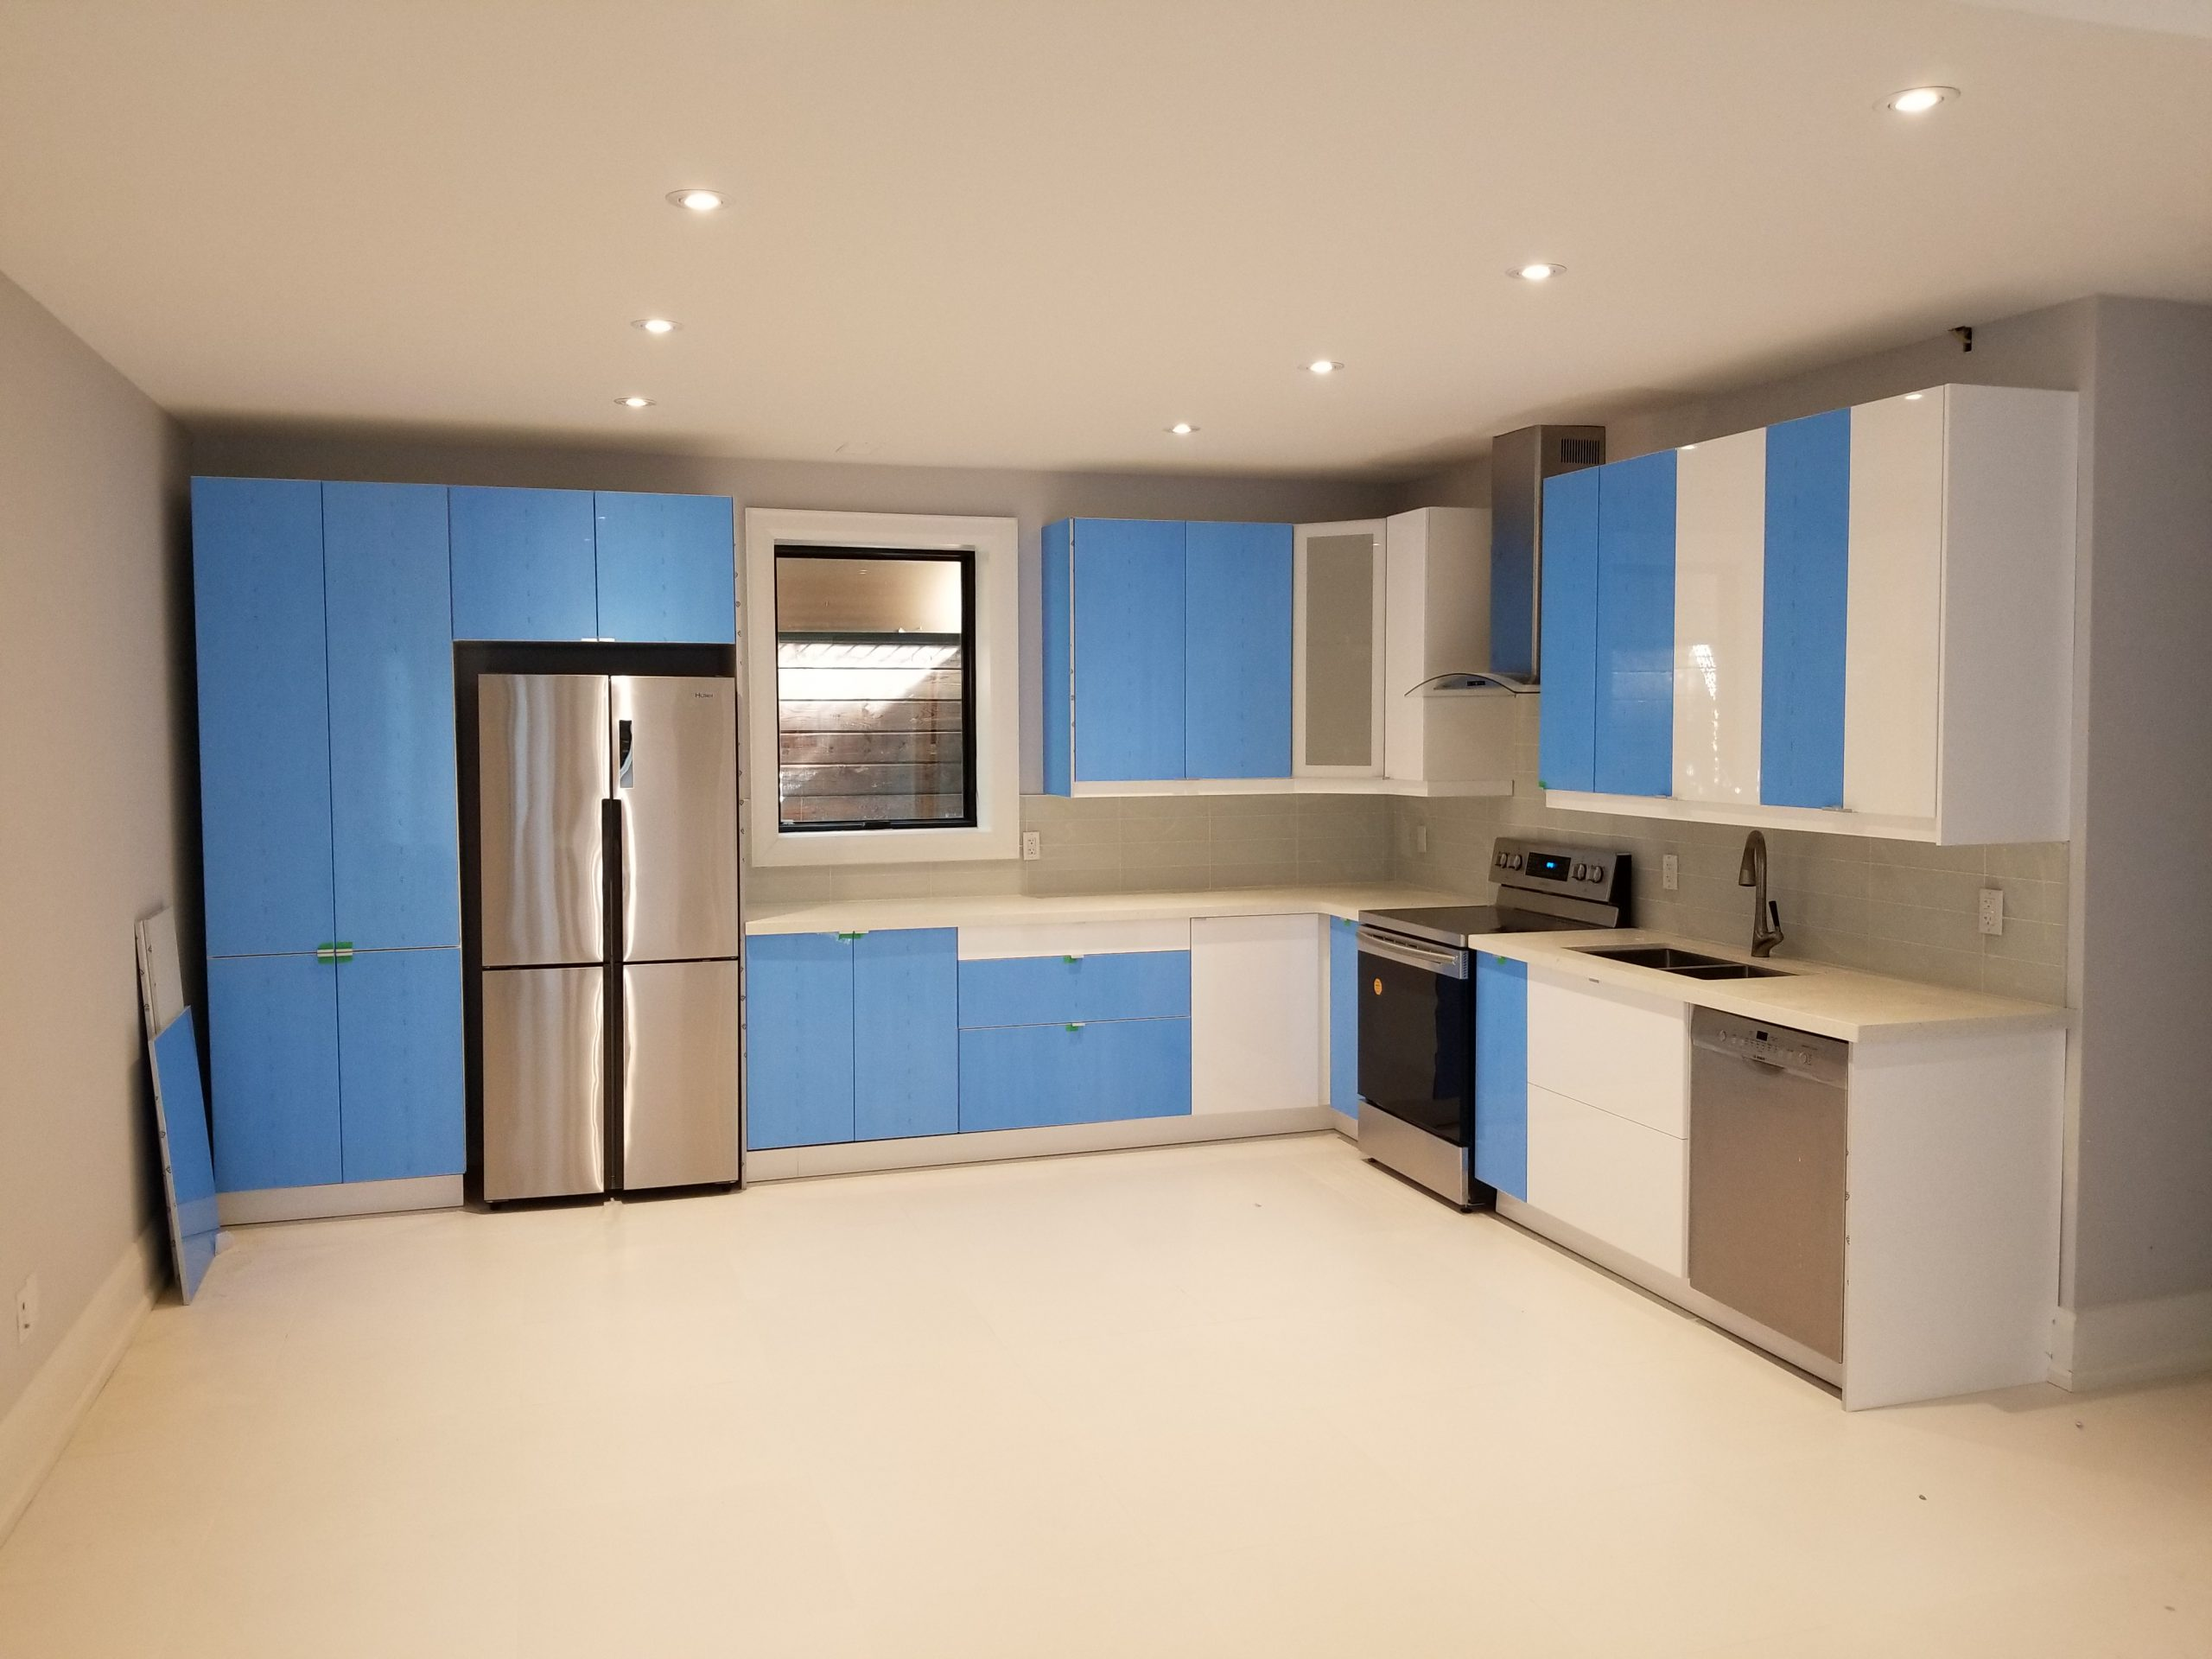 Kitchener kitchen installation